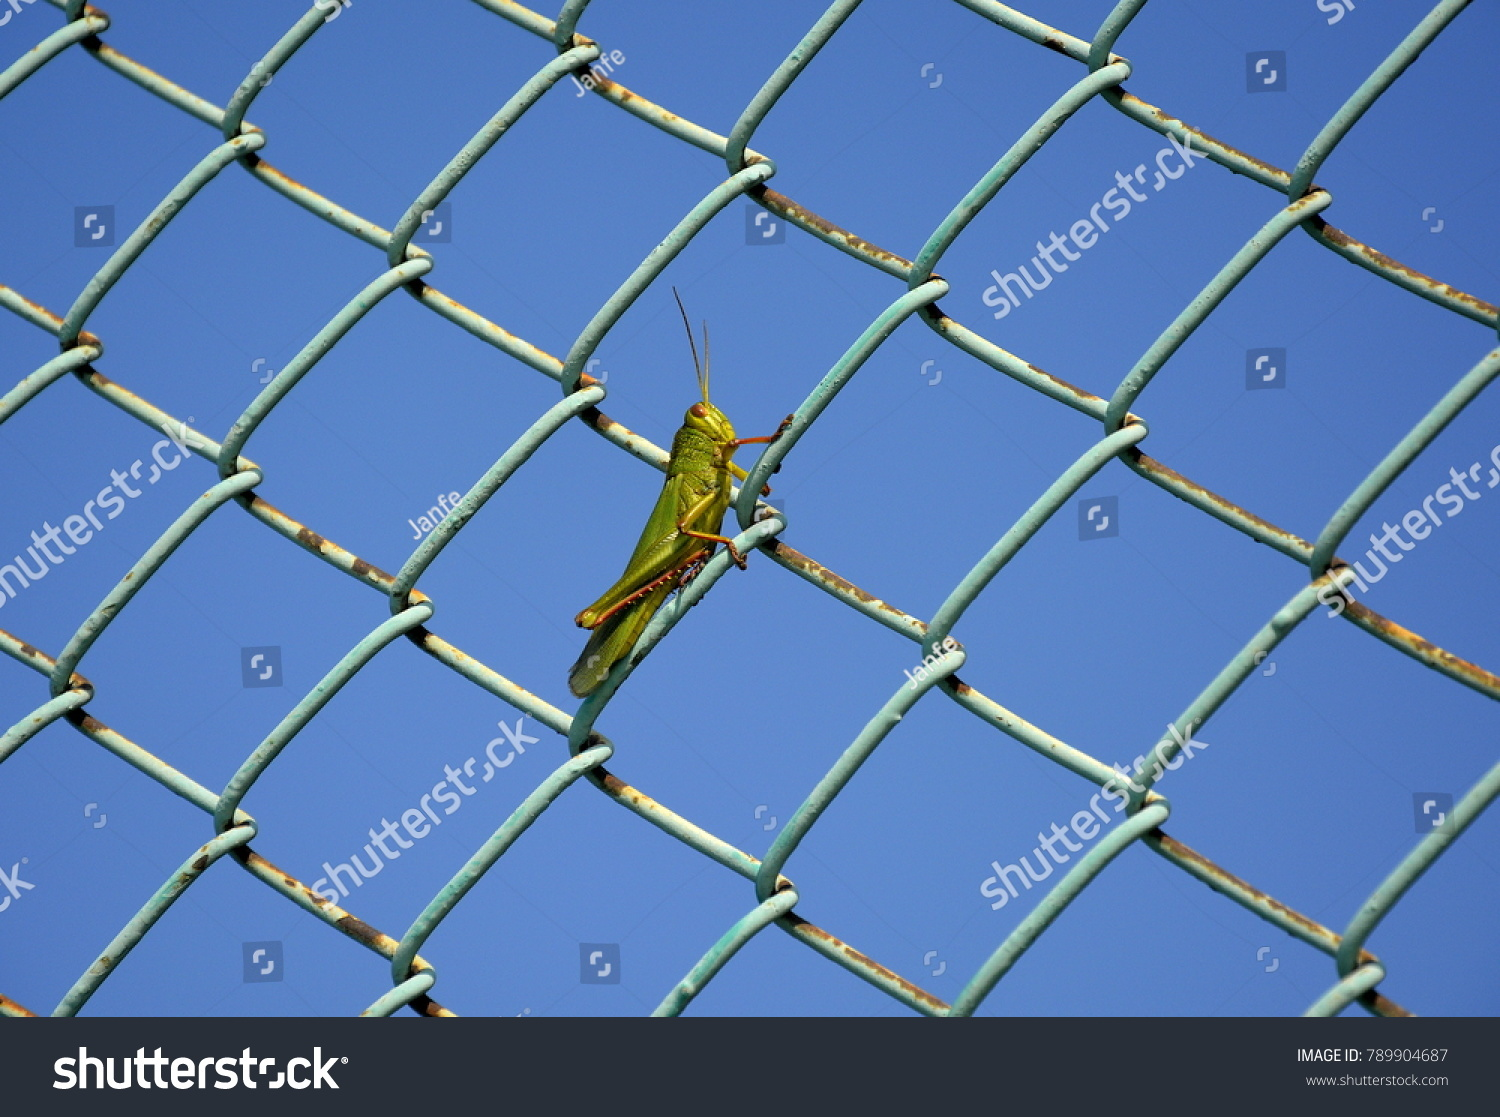 Grasshopper On Wire Net Fence Stock Photo (Edit Now) 789904687 ...